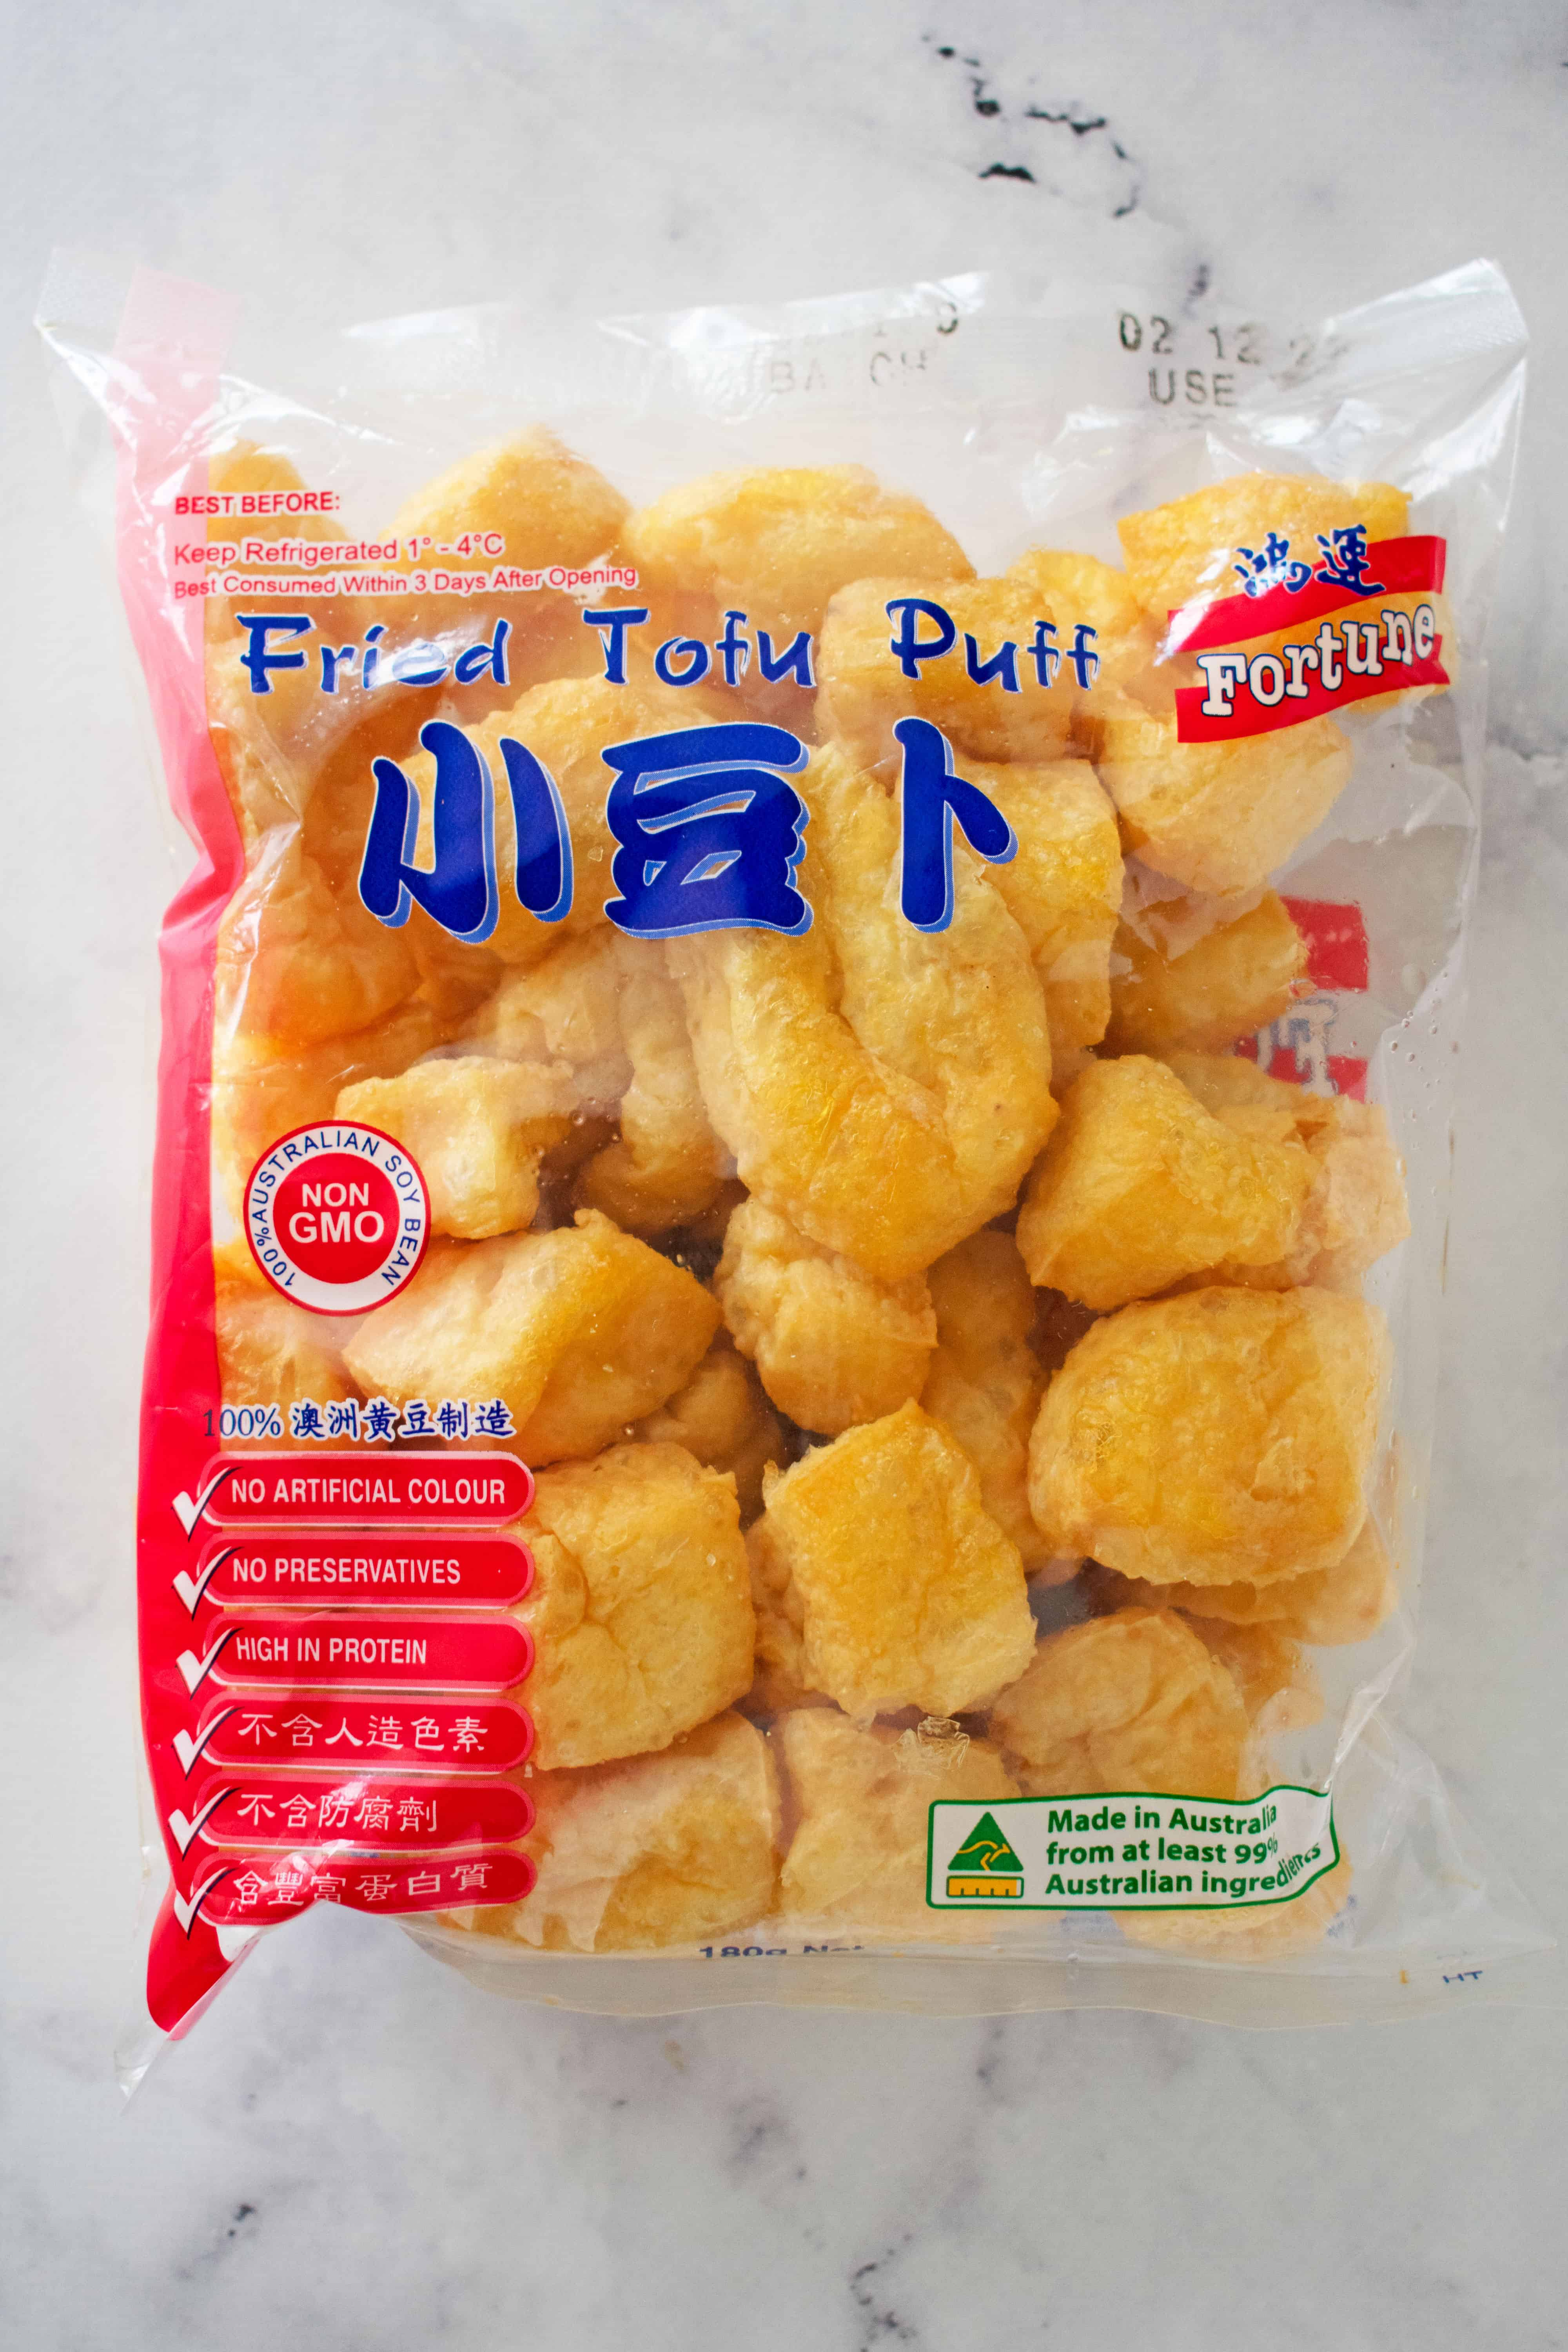 A clear packet of fried tofu puffs.